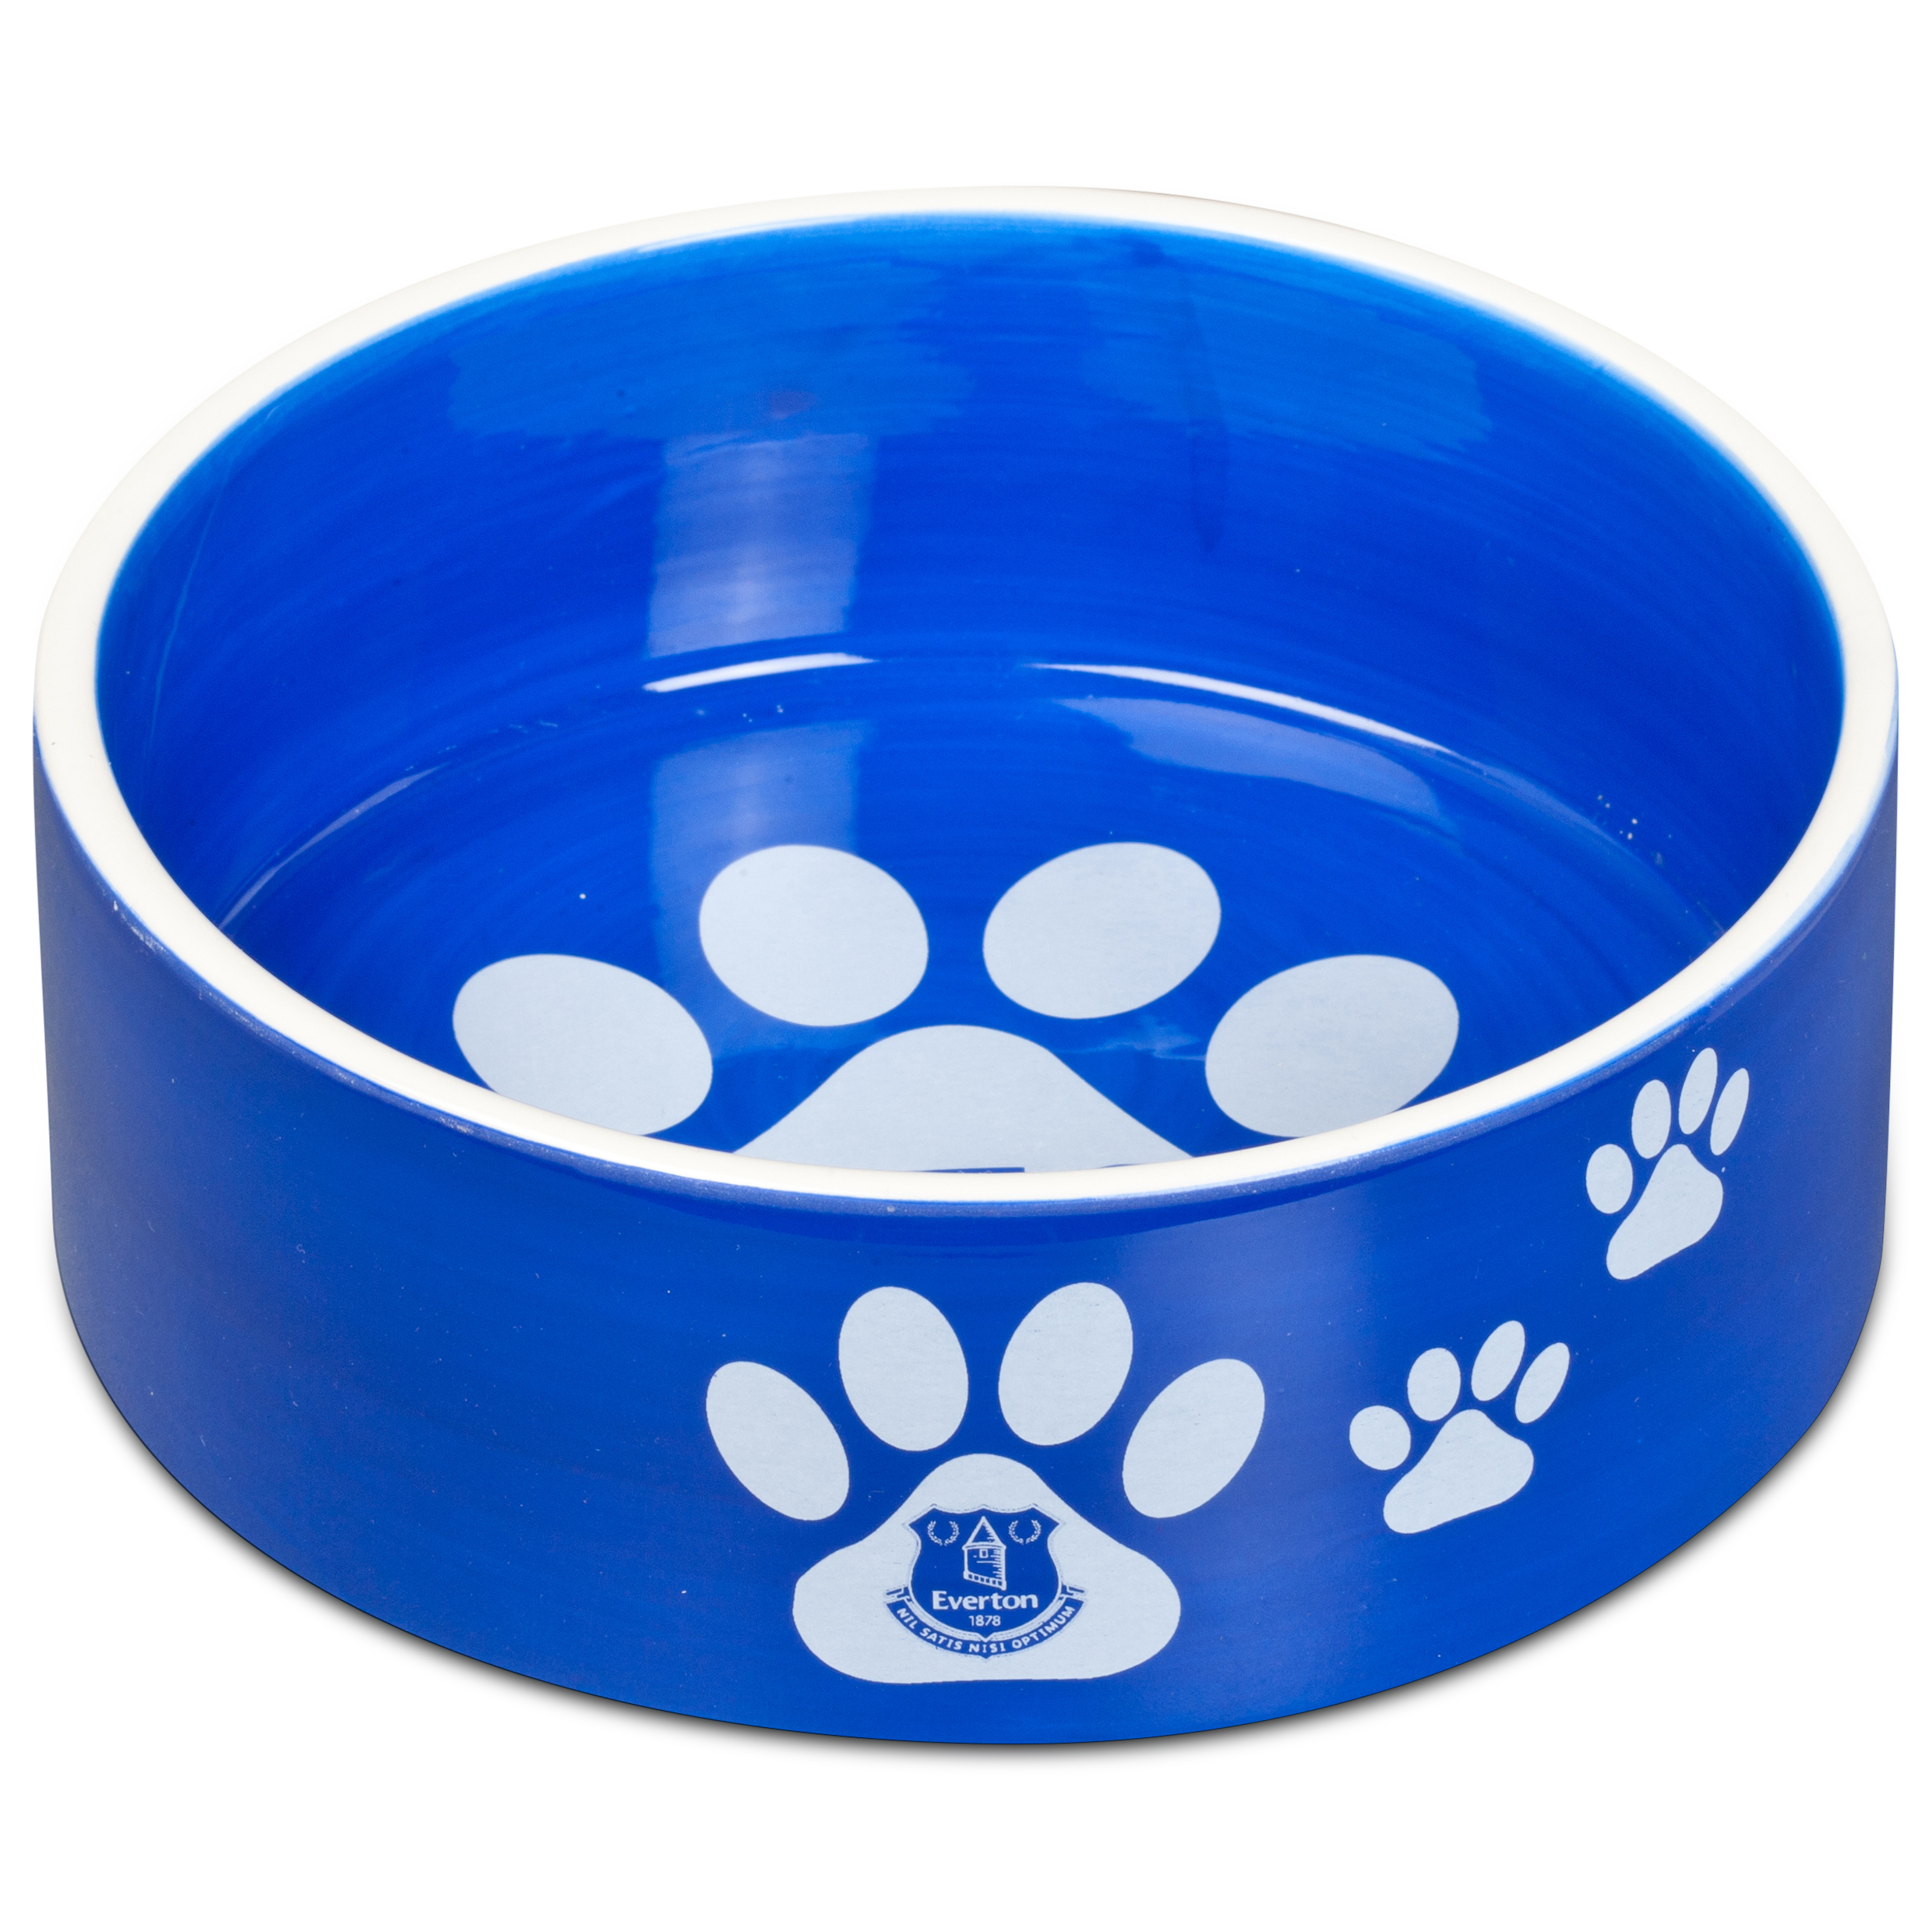 Everton Pet Bowl Large